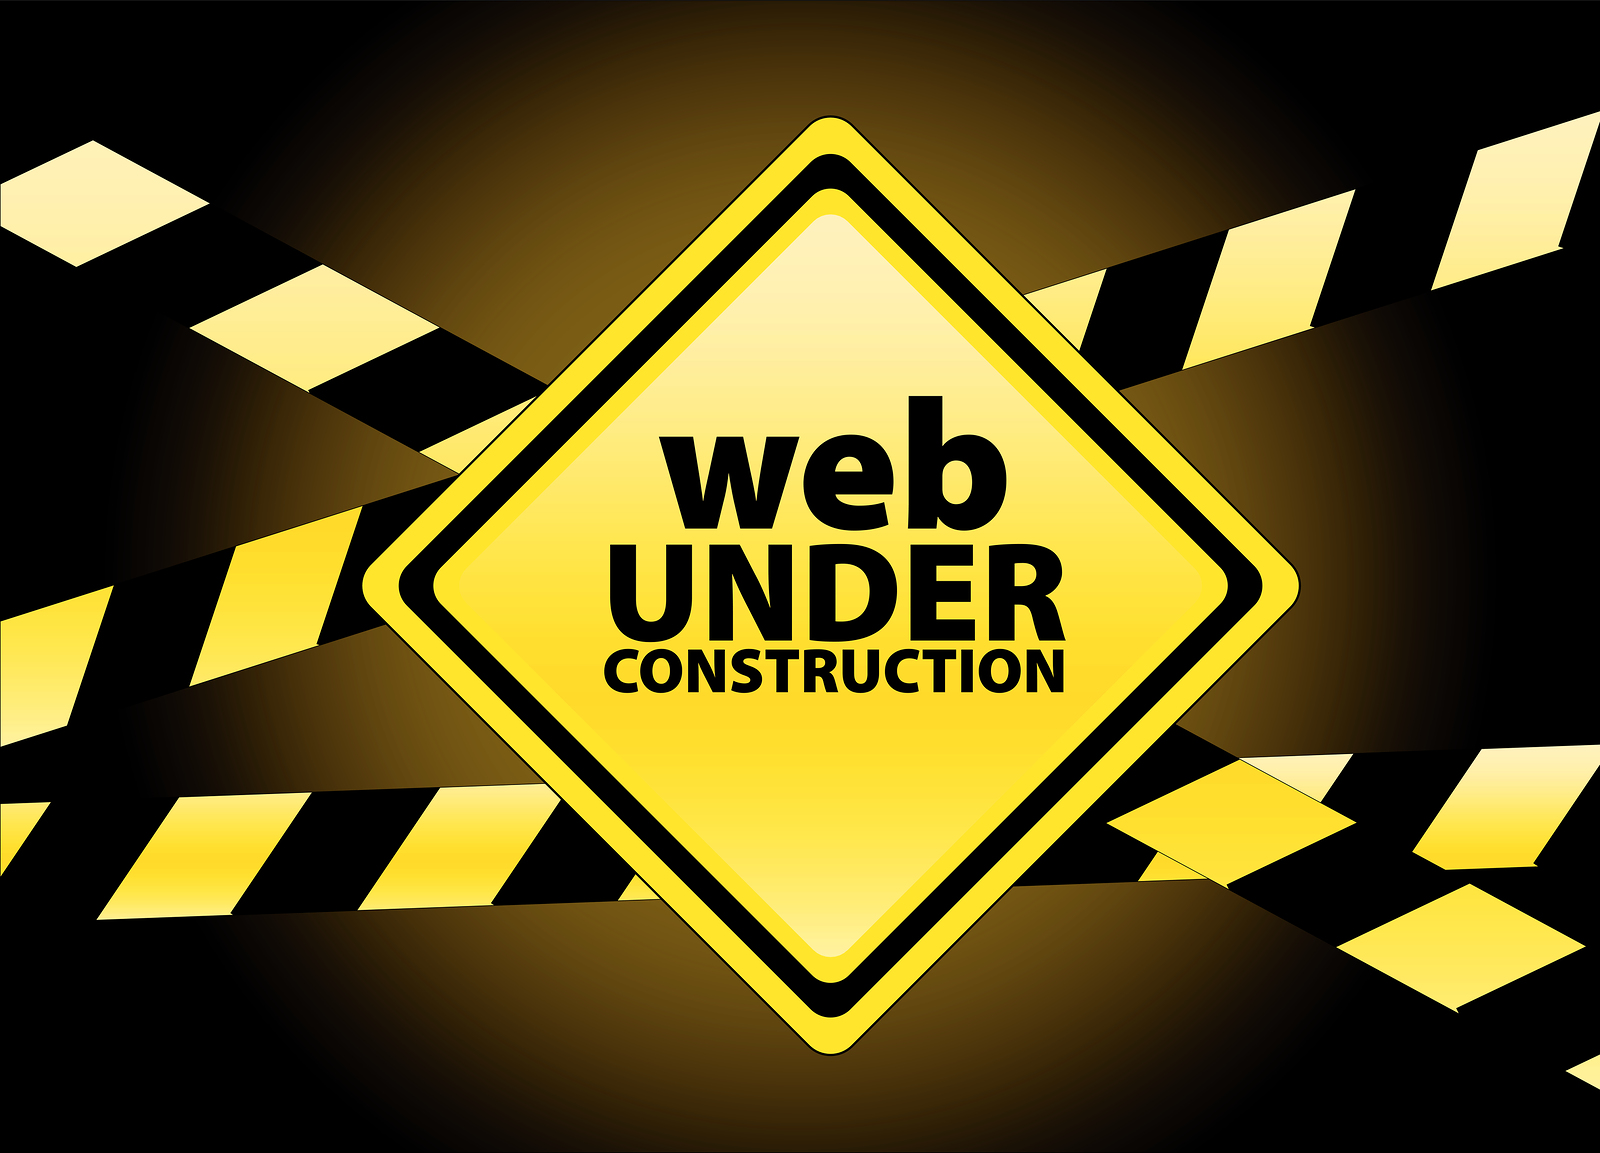 our site is currently under construction please come keep coming back zEOVzY clipart